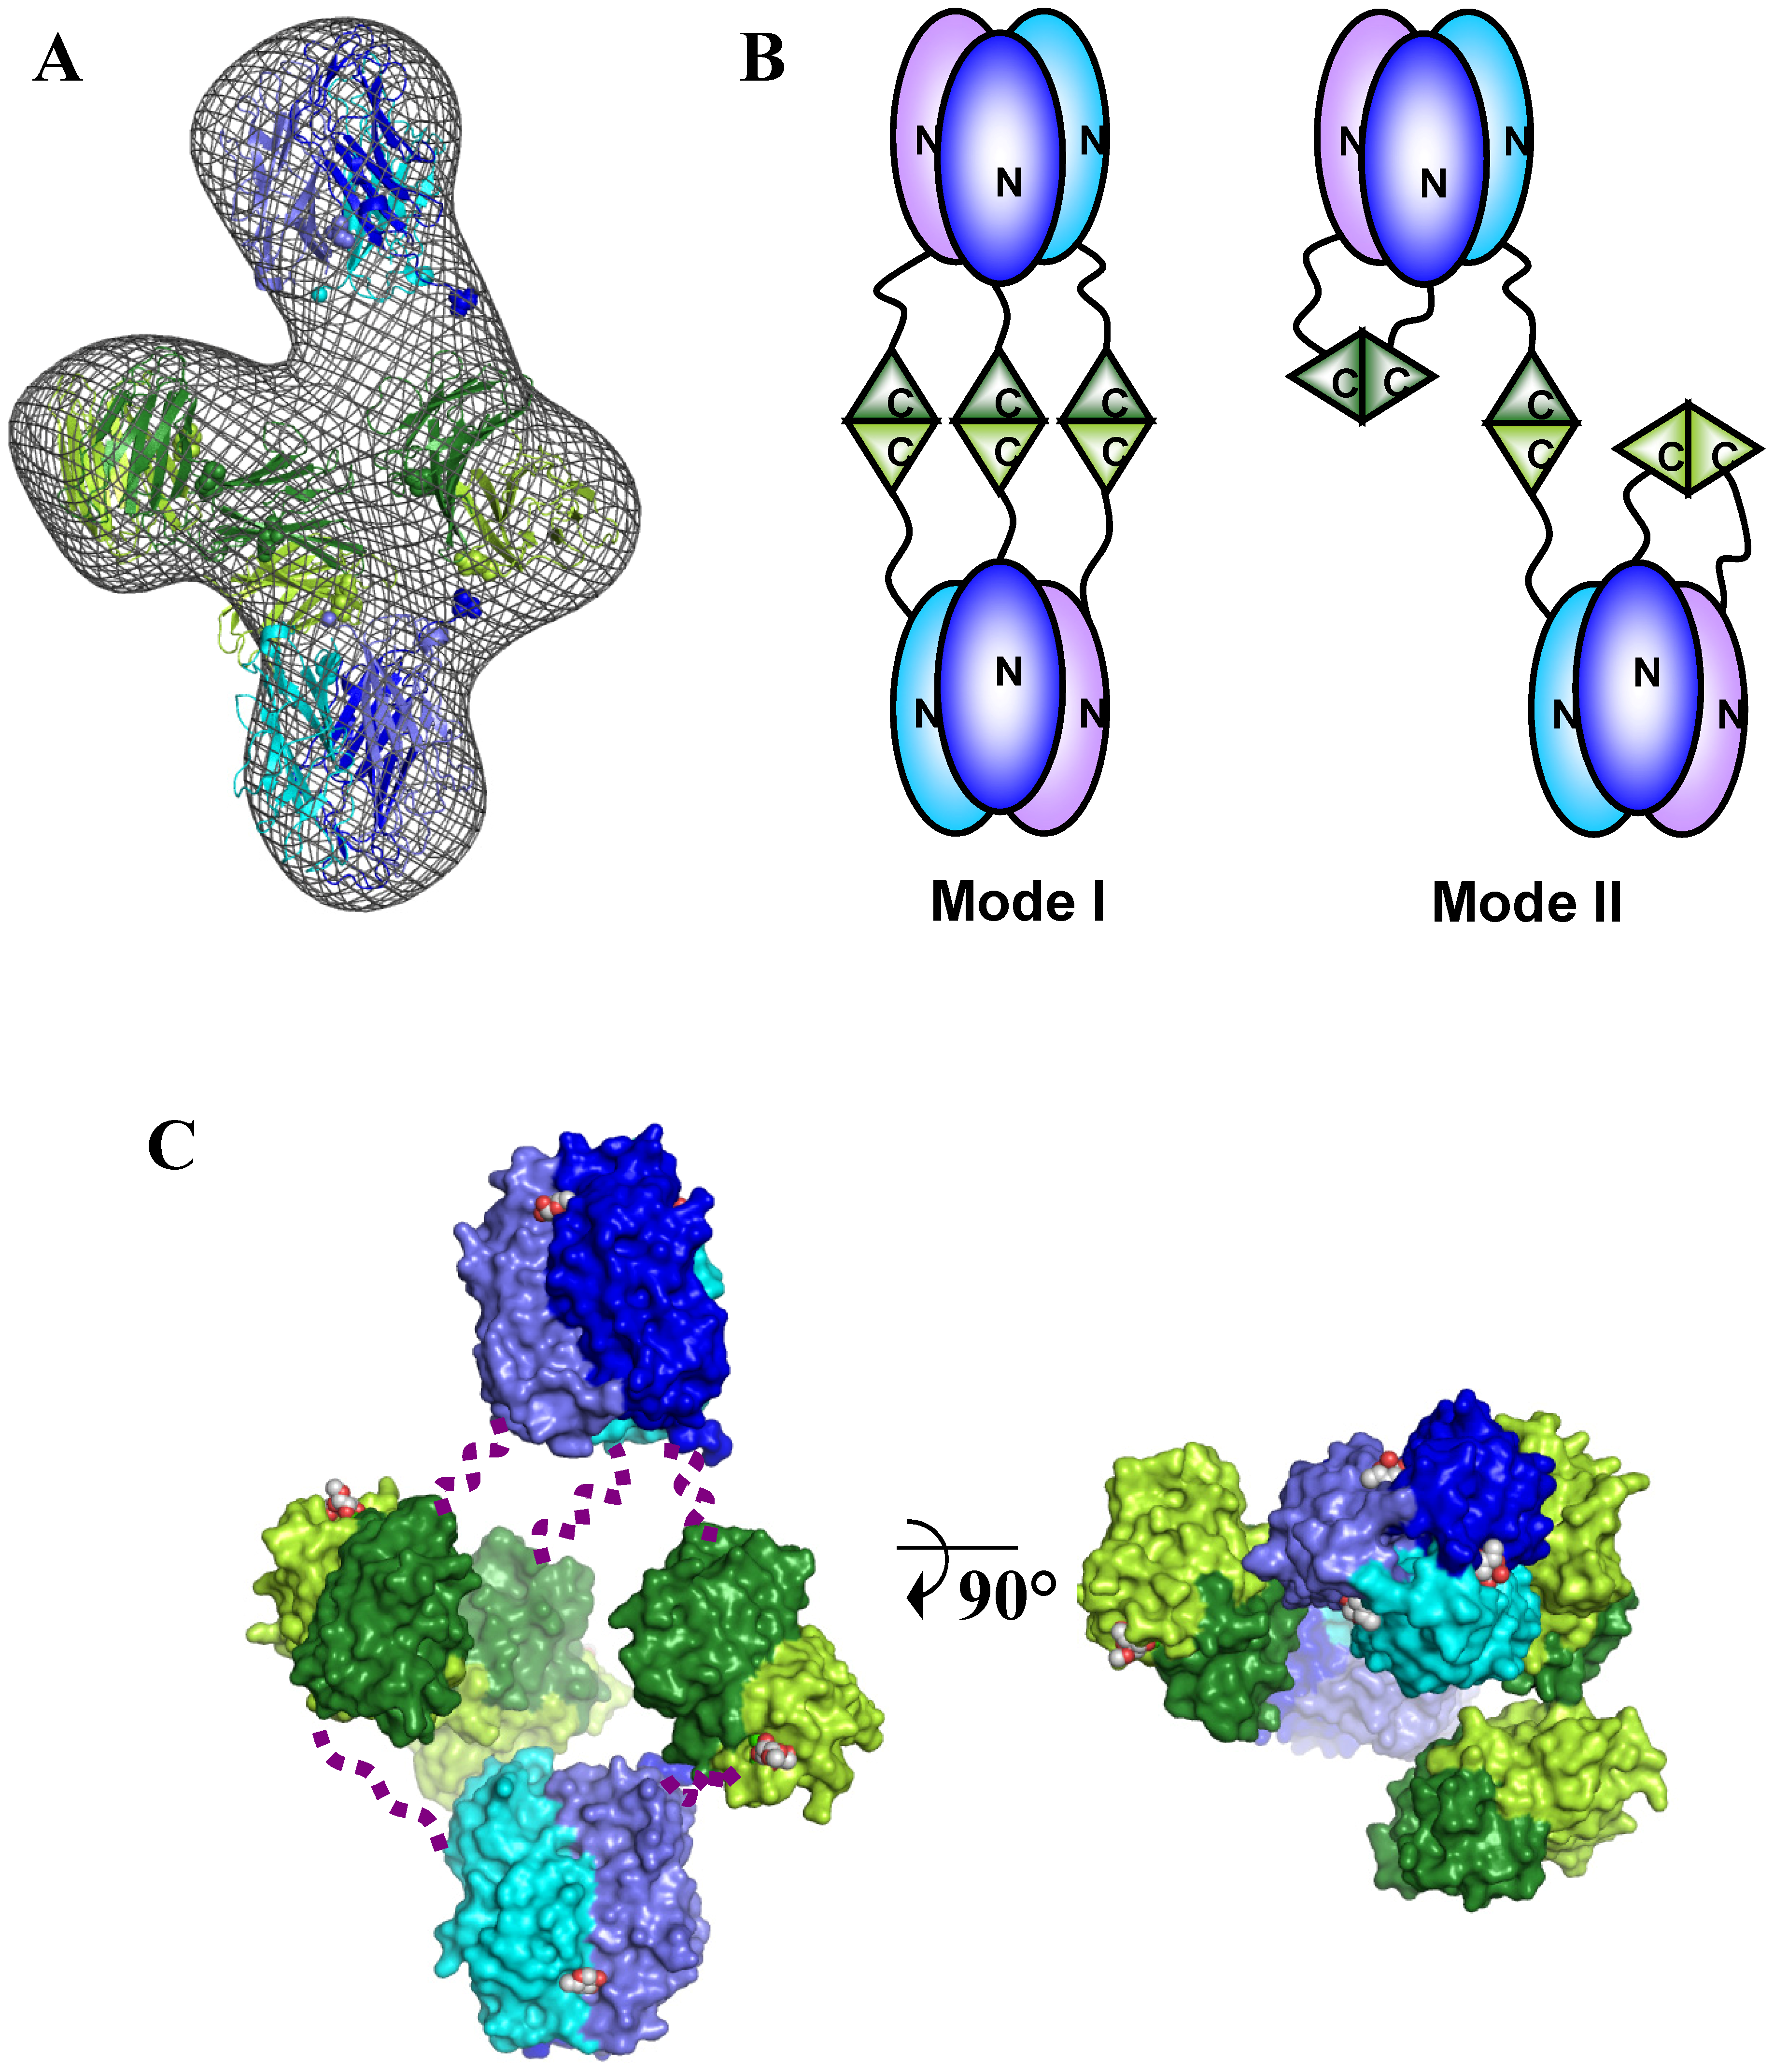 Models of the BC2L-C hexamer with N-terminal domains in blue and C-terminal domains in green.